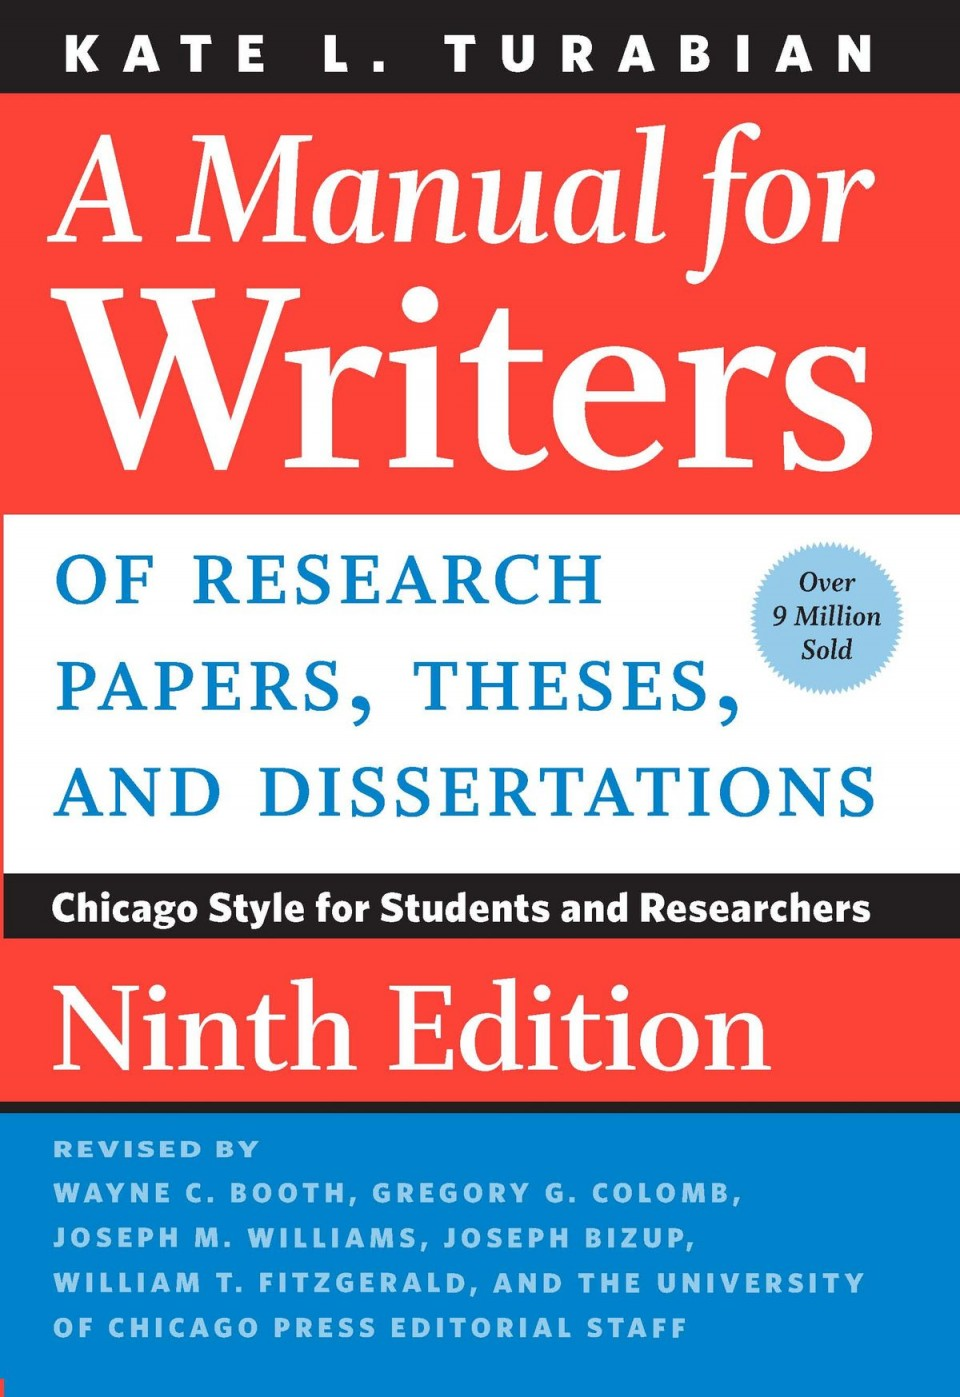 008 Research Paper Manual For Writers Of Papers Theses And Dissertations Ninth Edition Unbelievable A Ebook 960